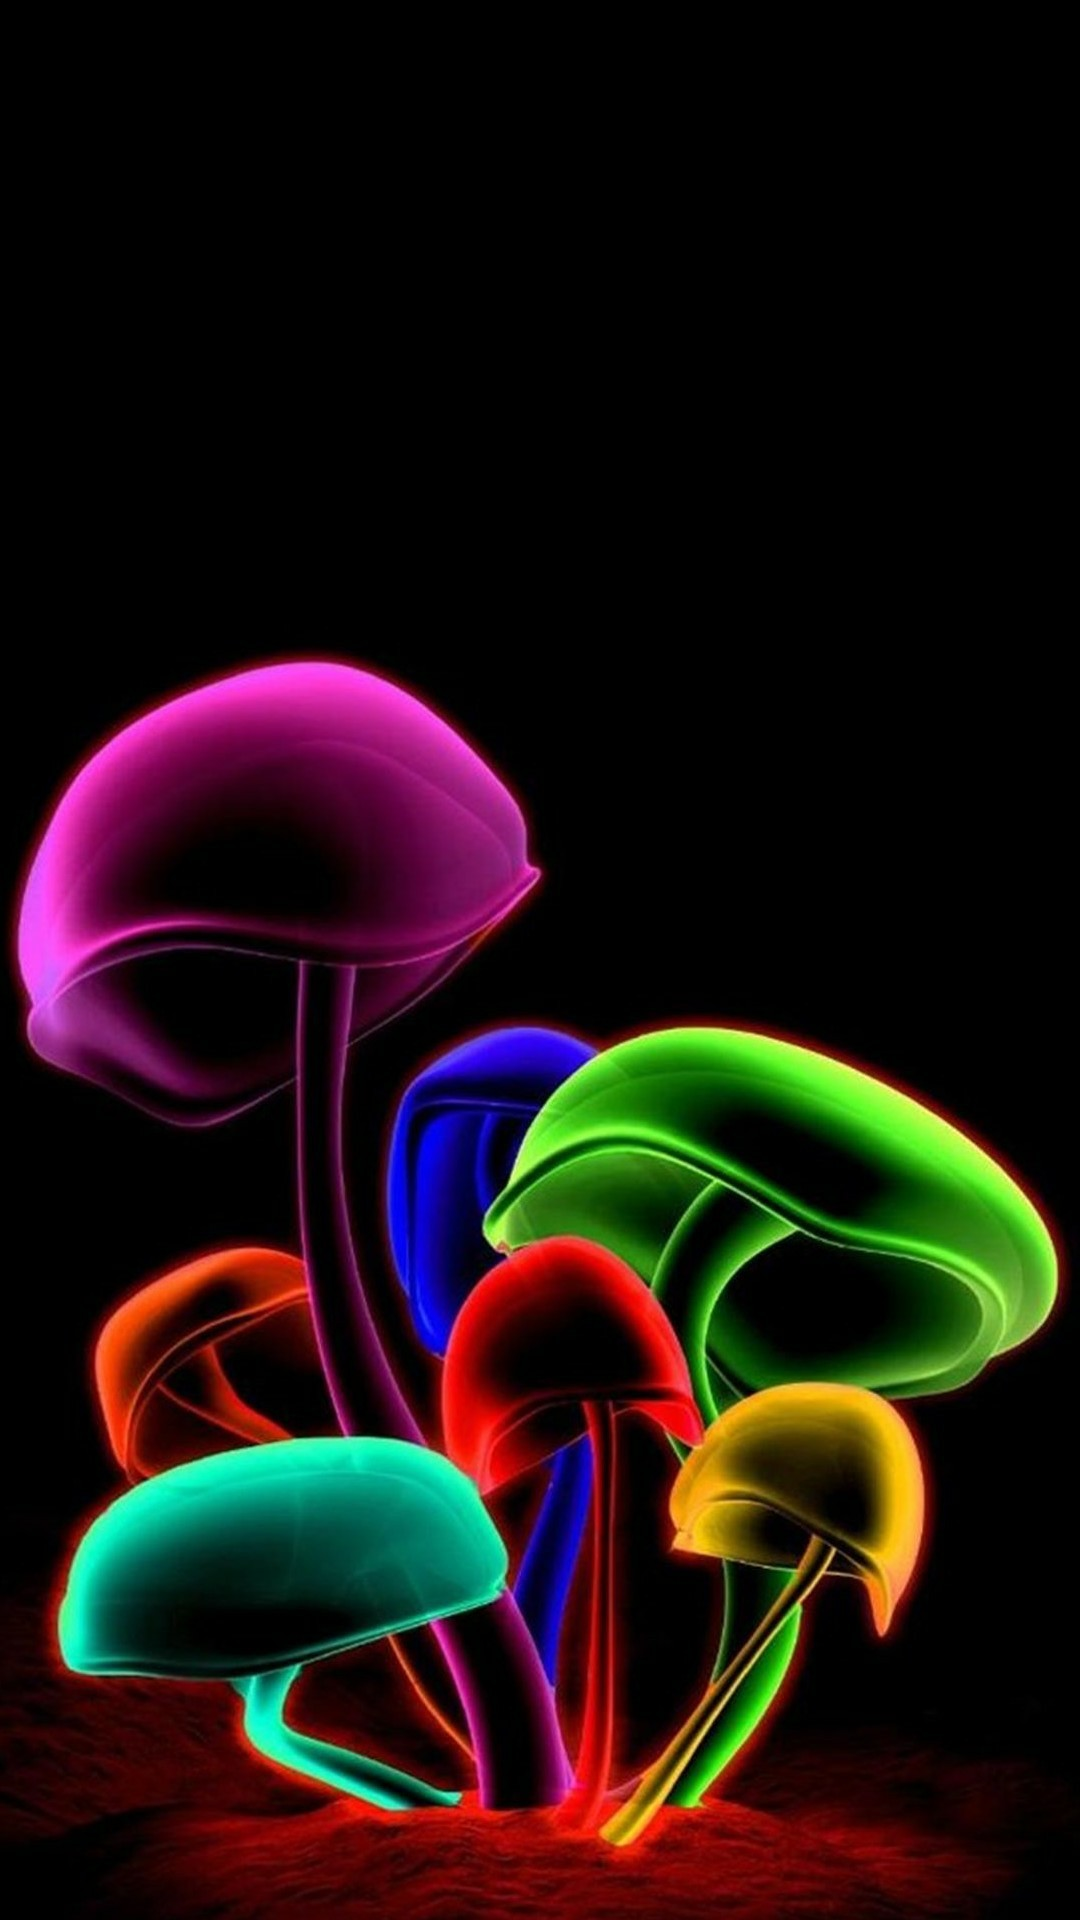 Hd Wallpapers 1080p For Phone 47 Images Dodowallpaper